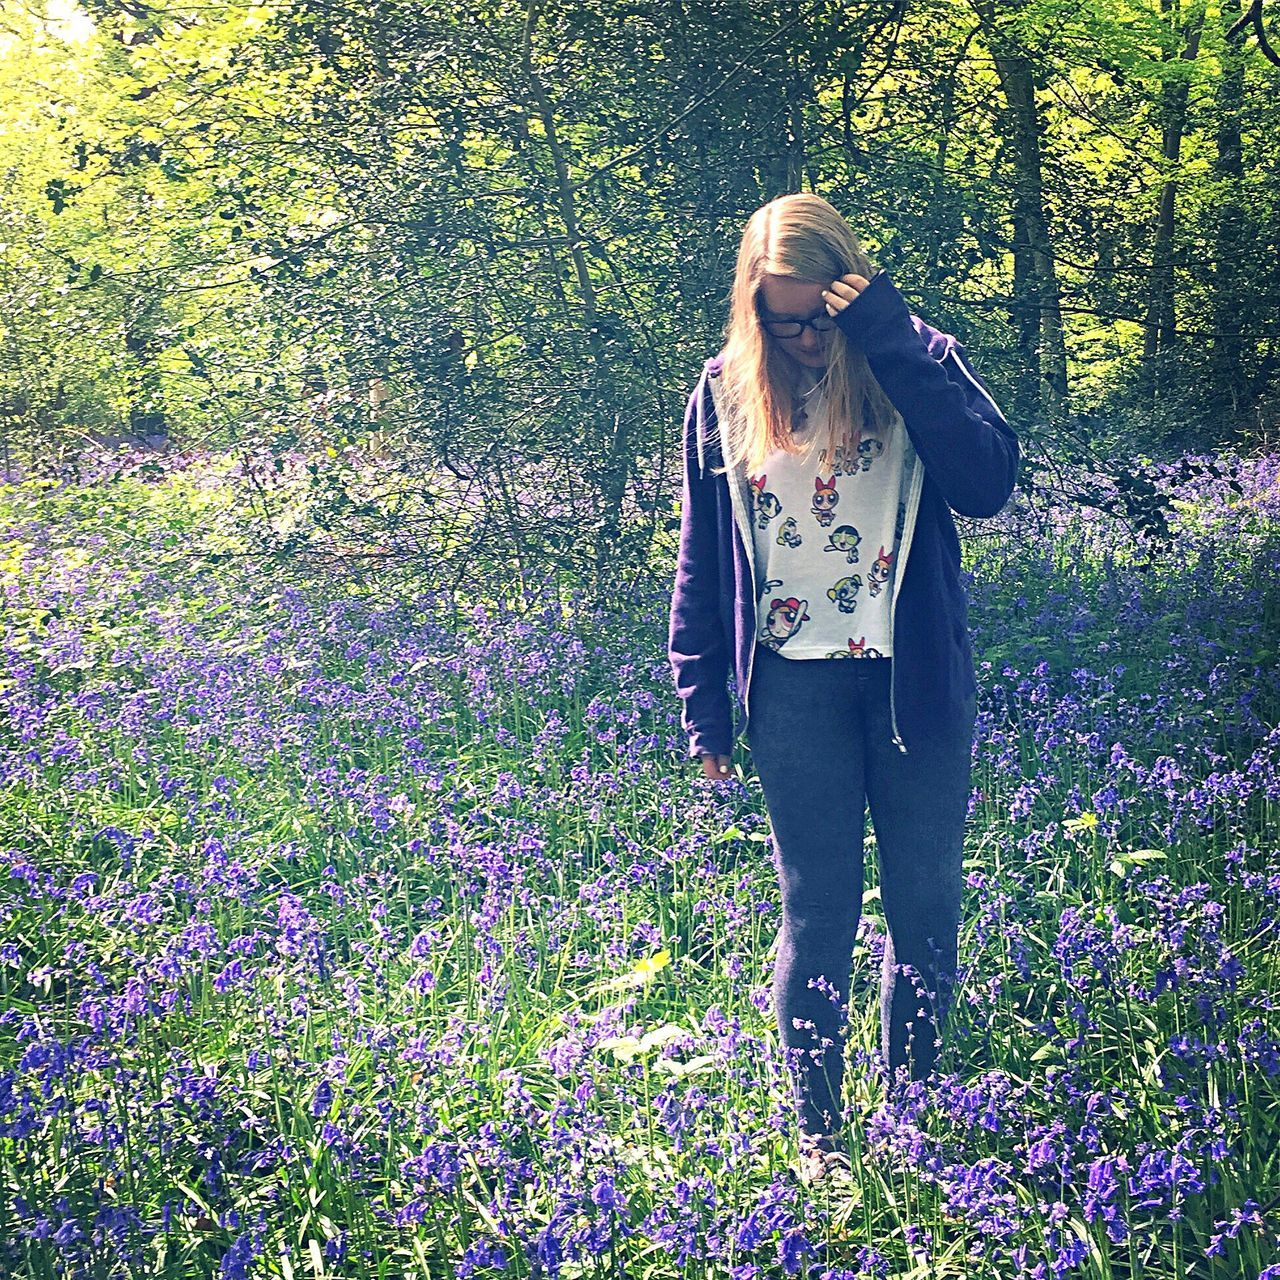 Outdoors Art Is Everywhere Plant Tranquil Scene Real People Day Flower Nature Only Women Young Adult Long Hair One Person One Woman Only Beauty One Young Woman Only Springtime Field Beauty In Nature Scenics Growth Blue Bluebells Bluebell Wood Bluebell Woods The Great Outdoors - 2017 EyeEm Awards BYOPaper!